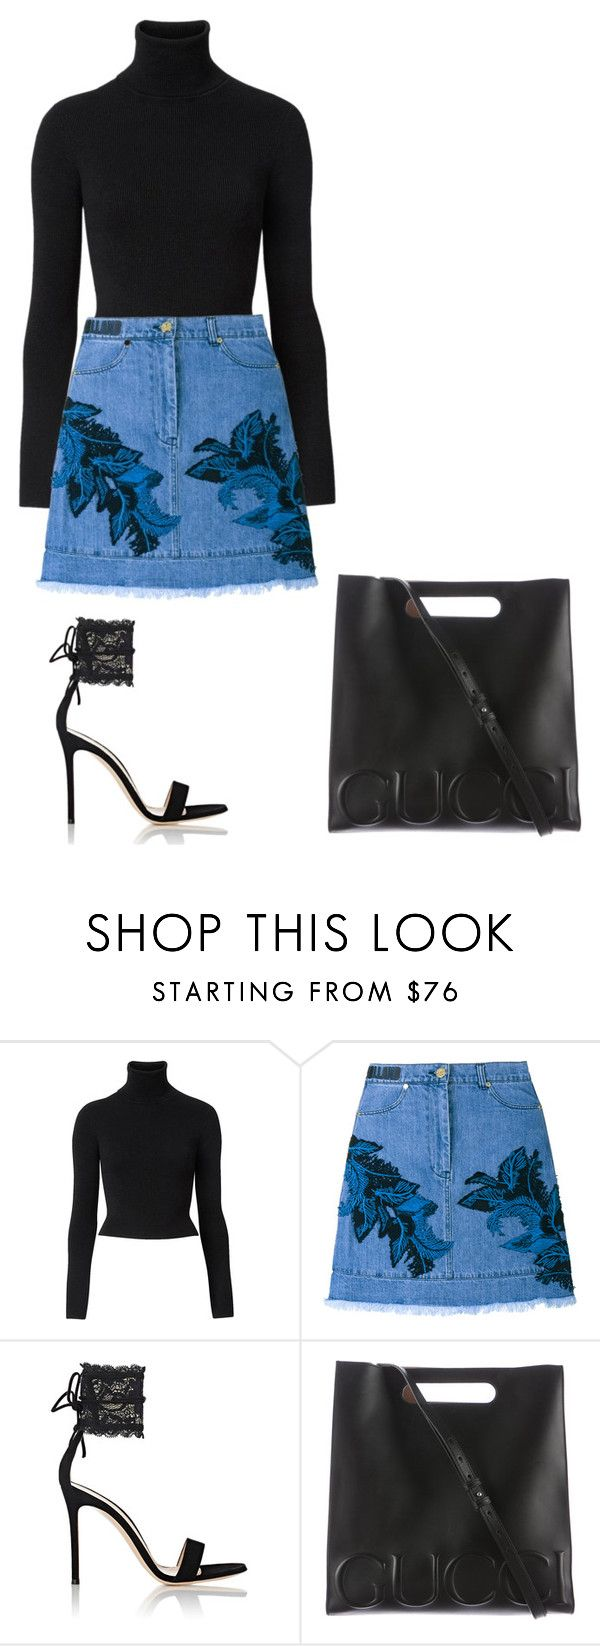 """Untitled #603"" by luxeyfaux ❤ liked on Polyvore featuring Witchery, House of Holland, Gianvito Rossi and Gucci"